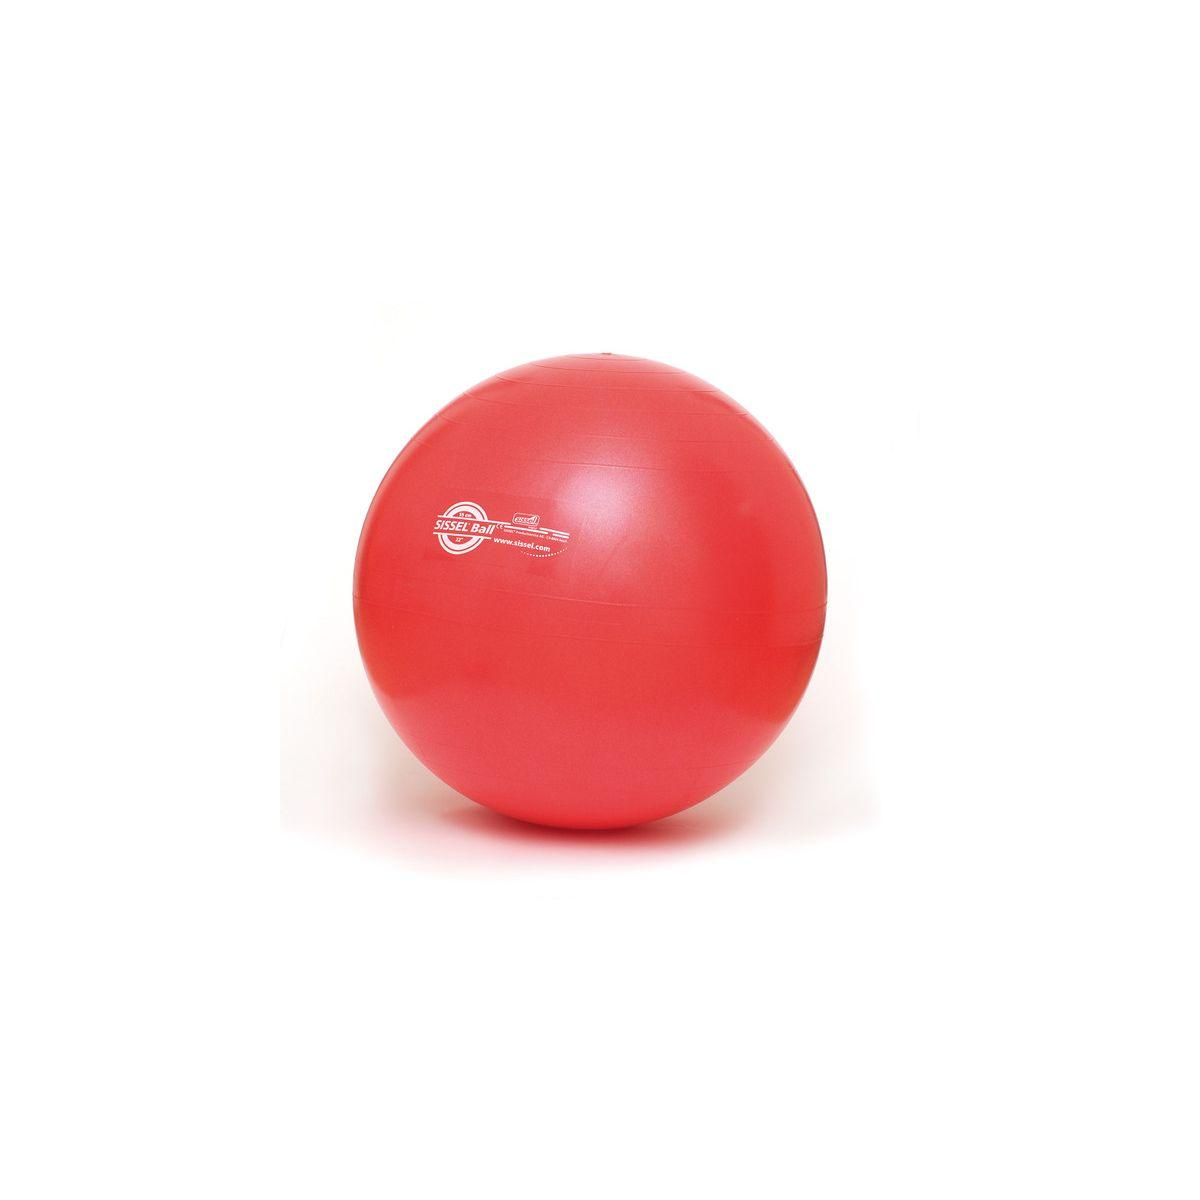 Ballon sissel ball 55cm (photo)